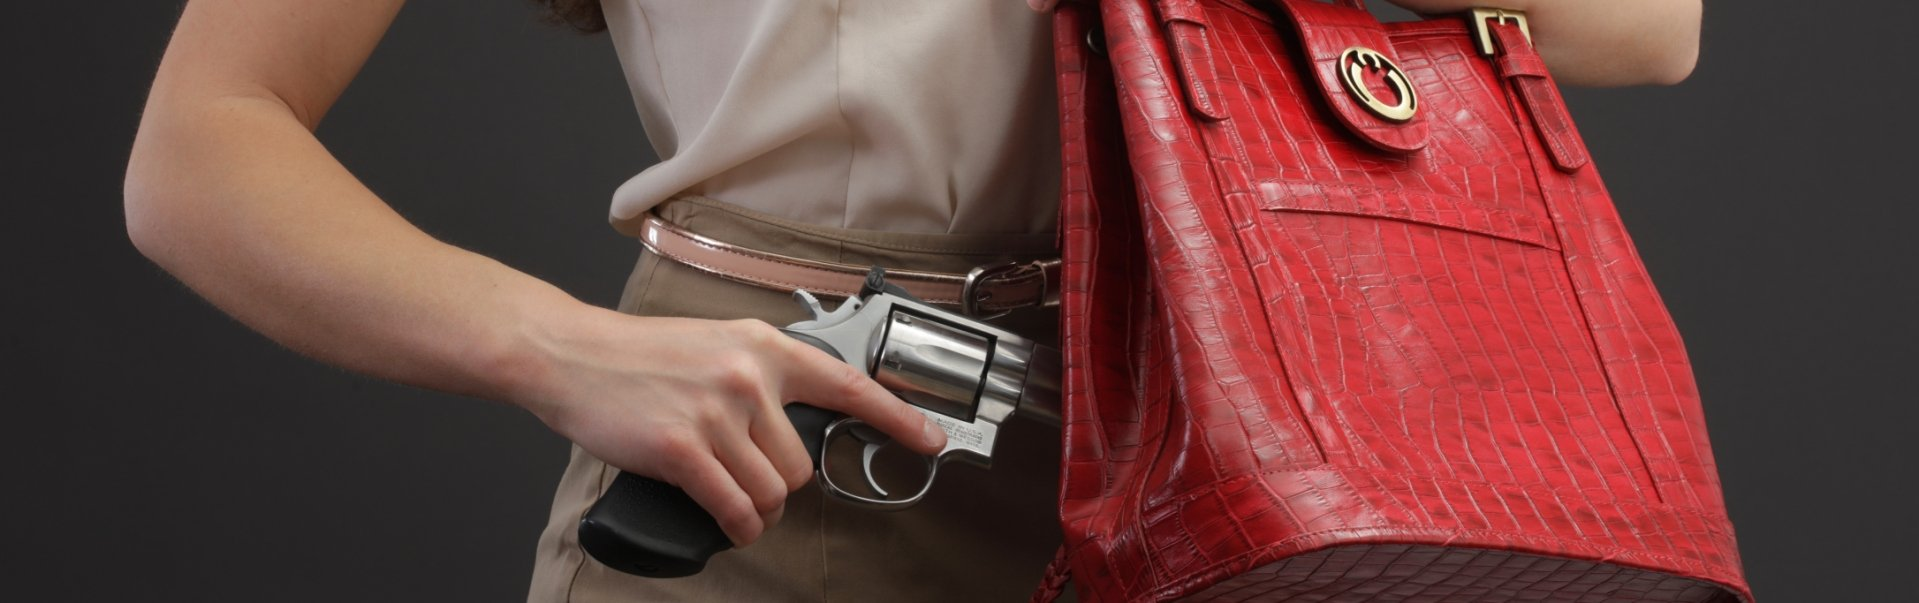 concealed carry arguement Get access to concealed carry argument essays only from anti essays listed results 1 - 30 to carry concealed carry of weapons is the need for self- defense in the united state, only in the state.